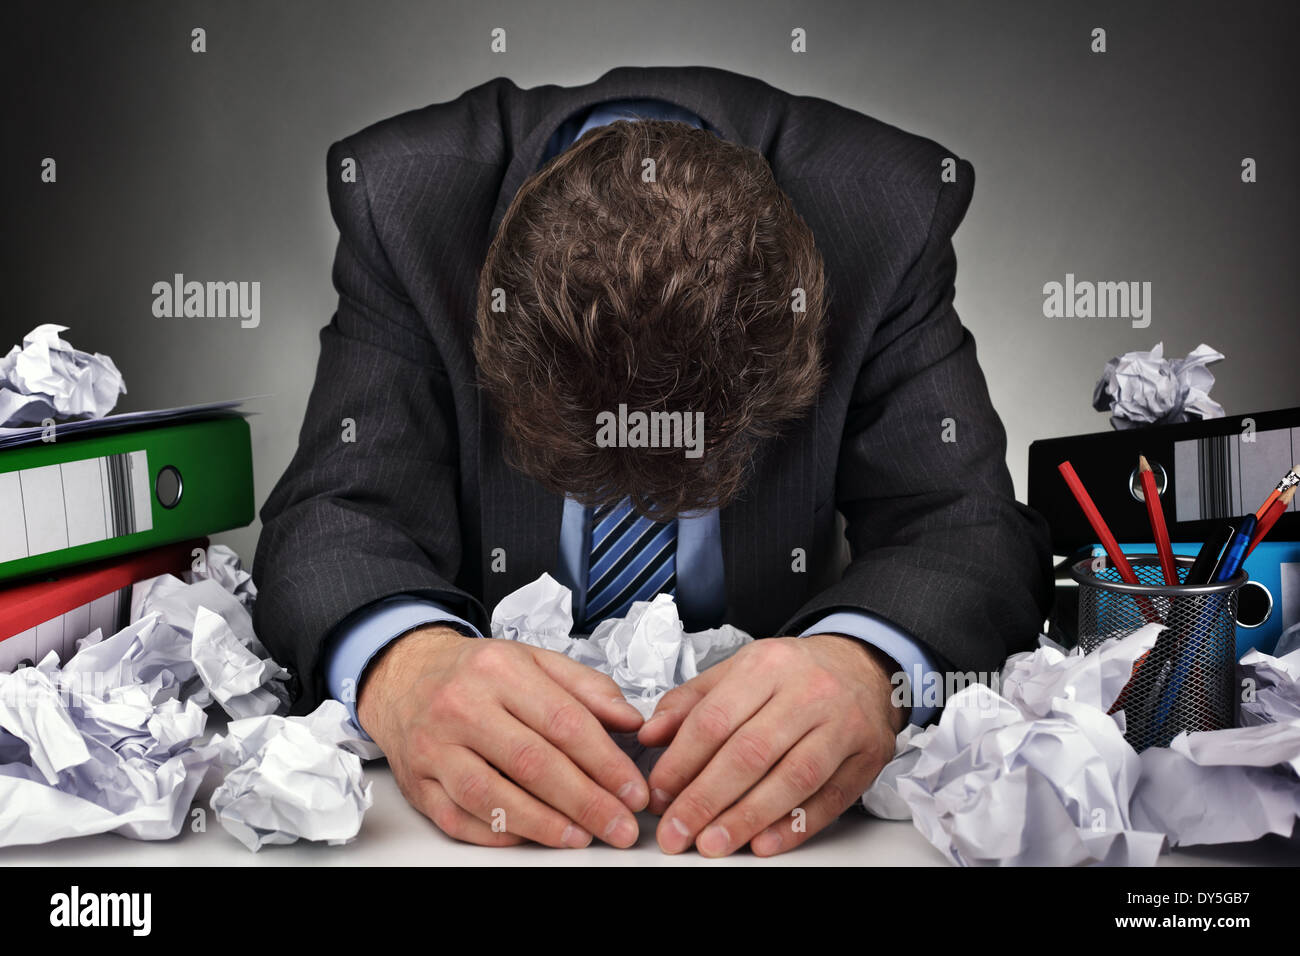 Overworked or writers block - Stock Image